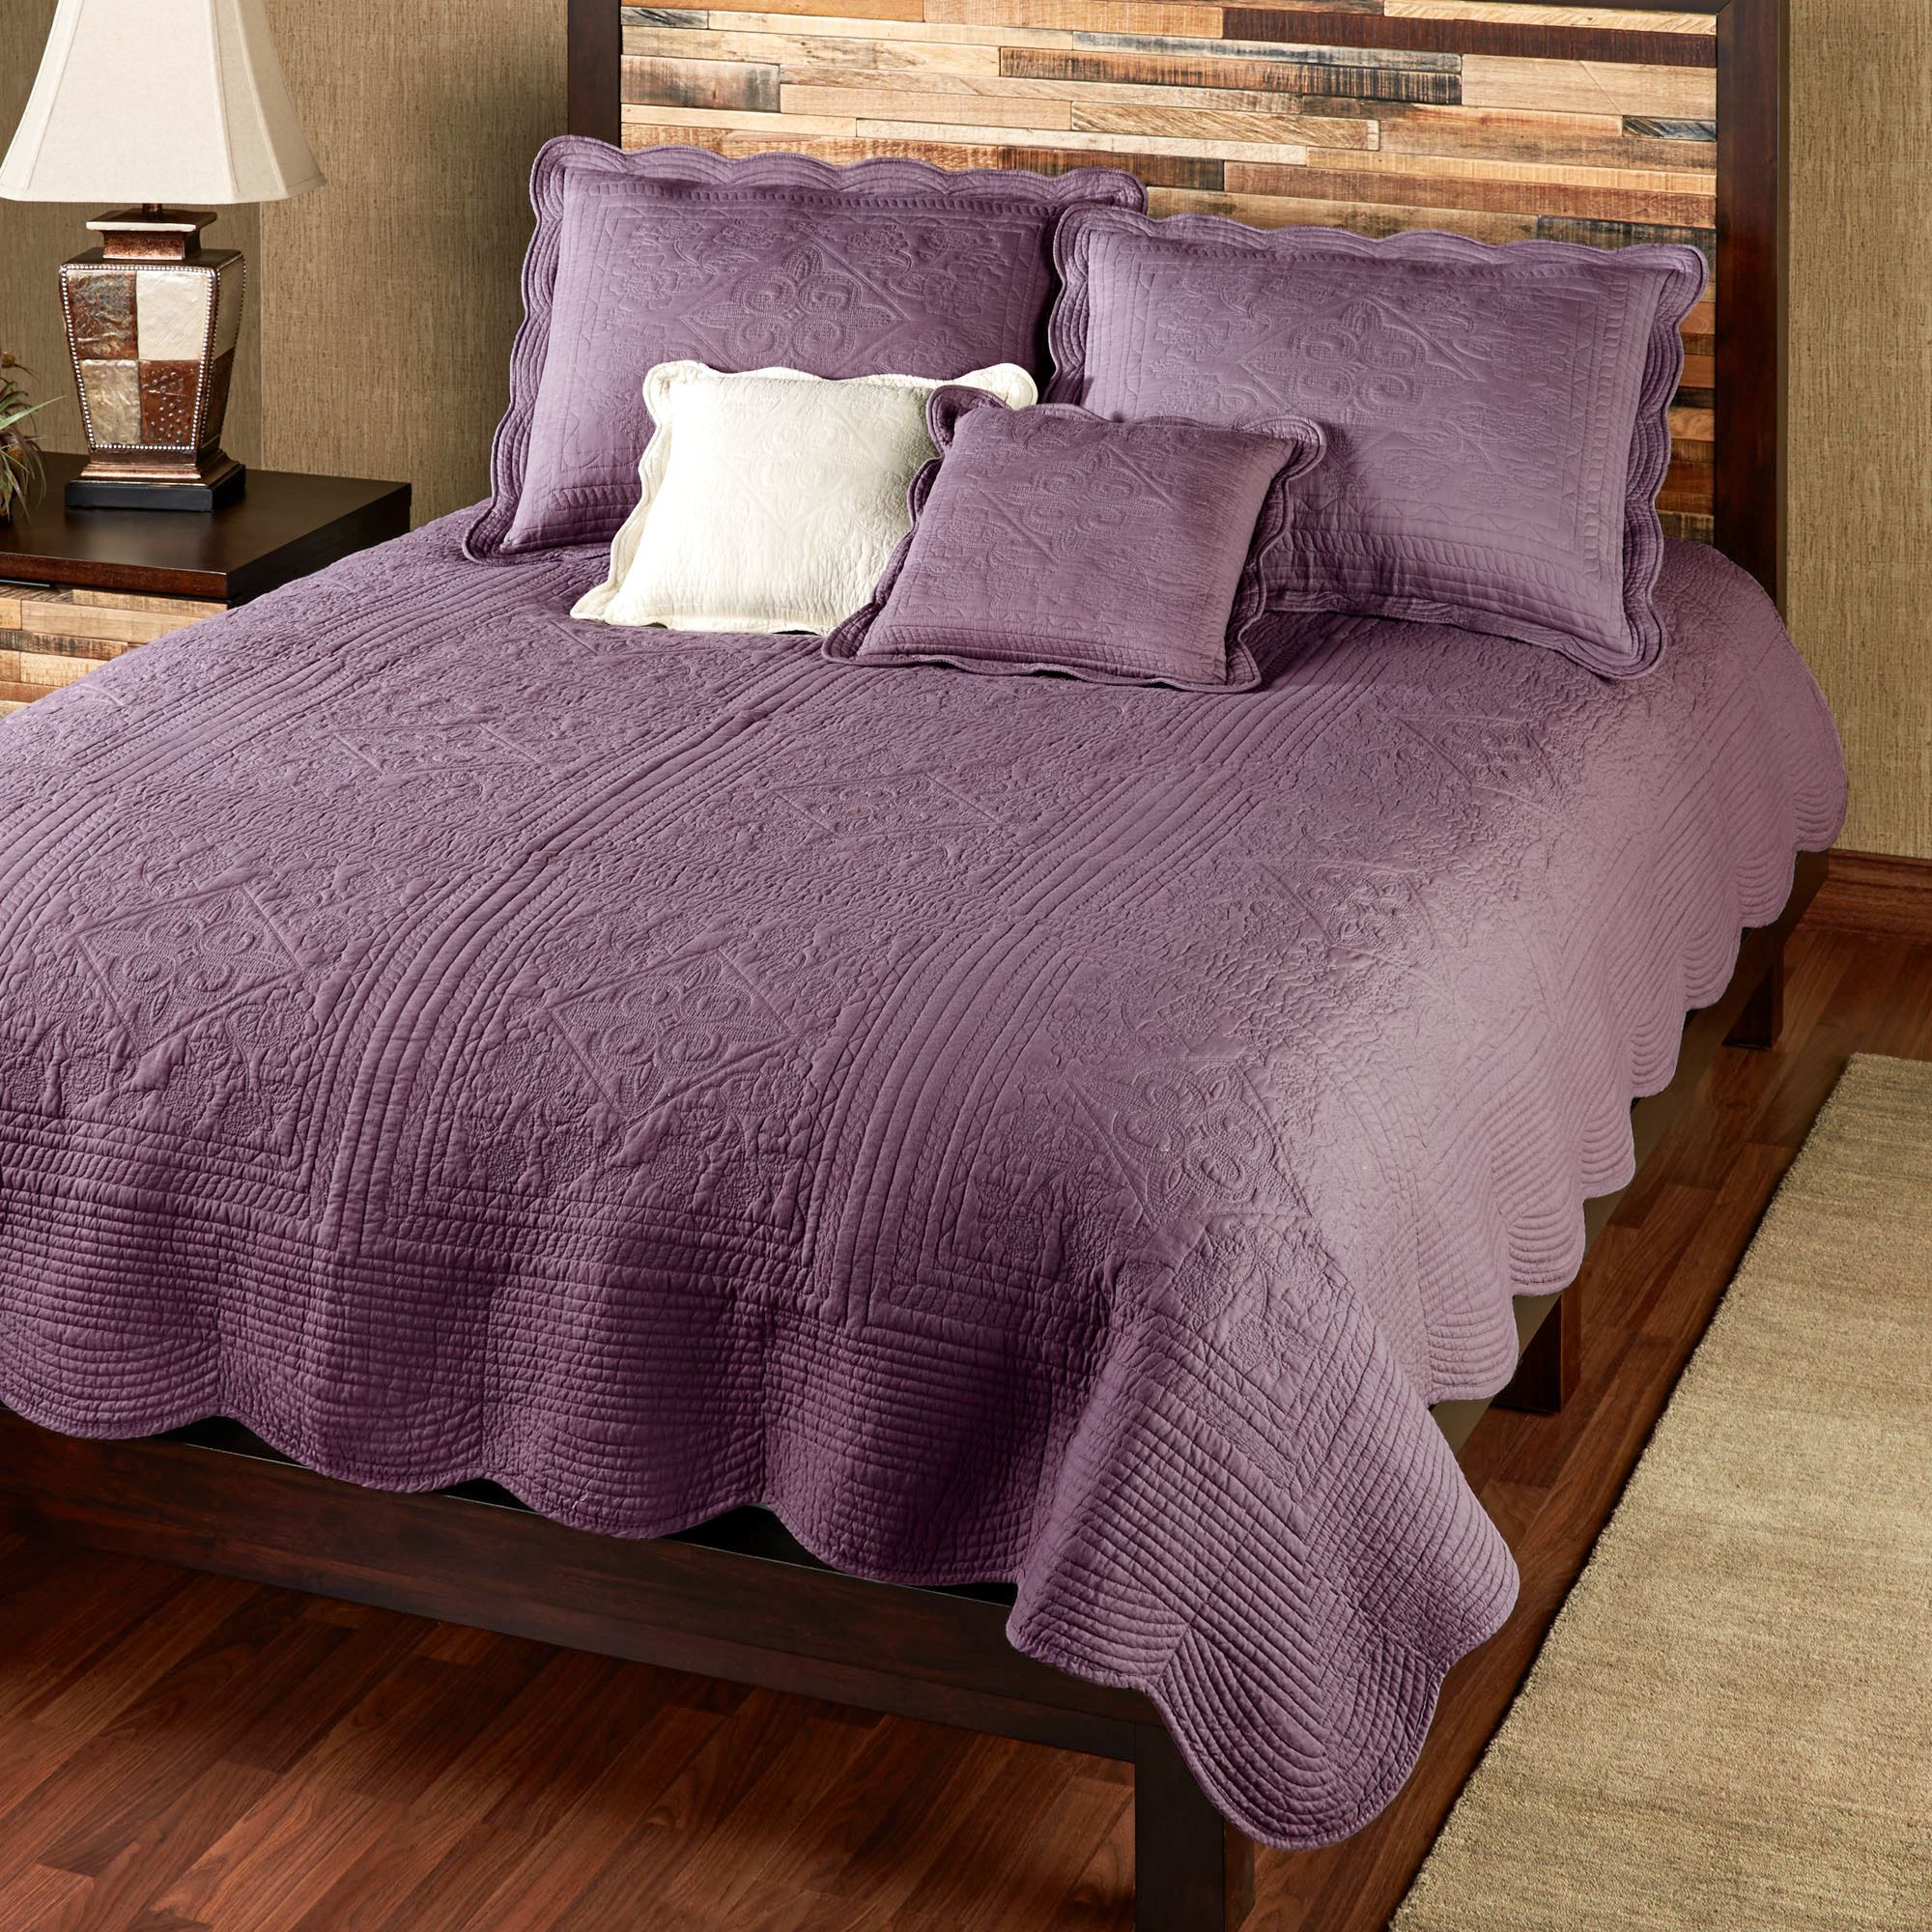 Venice Squares Solid Color Quilt Bedding : purple quilt bedding - Adamdwight.com